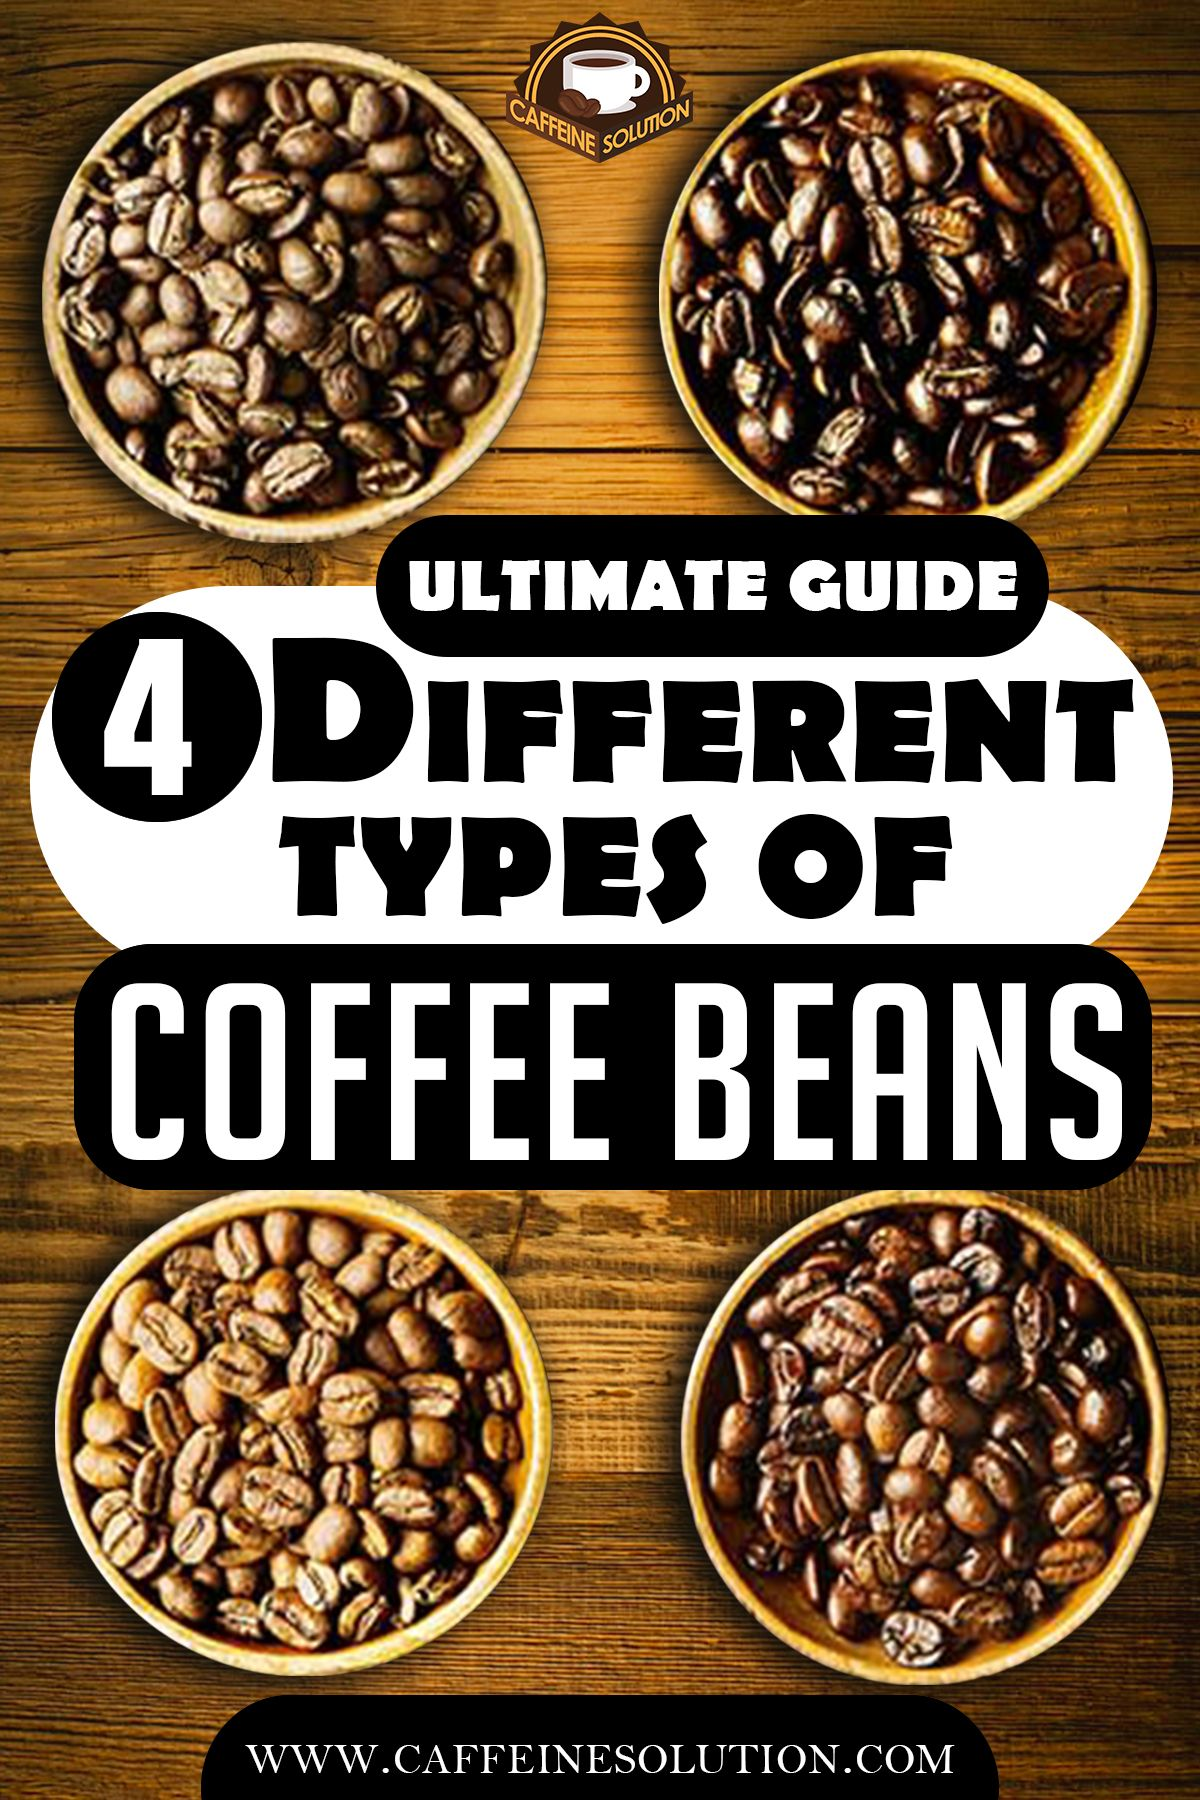 The Ultimate Guide To The 4 Different Types Of Coffee Beans Types Of Coffee Beans Coffee Type Different Types Of Coffee